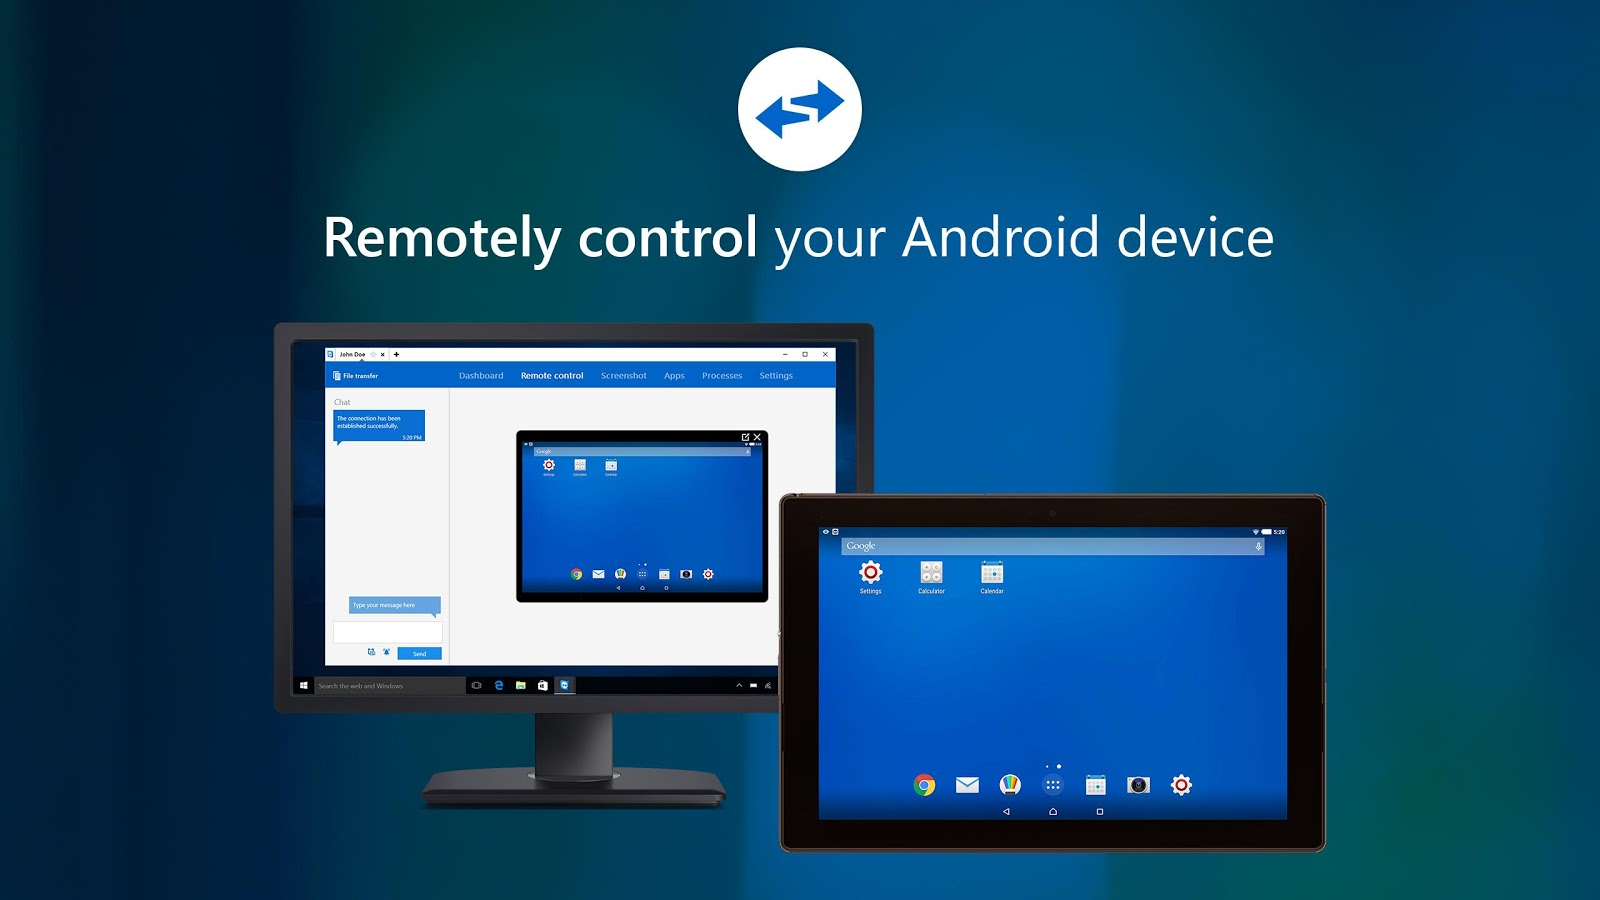 Camera Phone Control Android how to remote control android phone from isky tricks it is very easy another mobile have you ever tried the remotely from